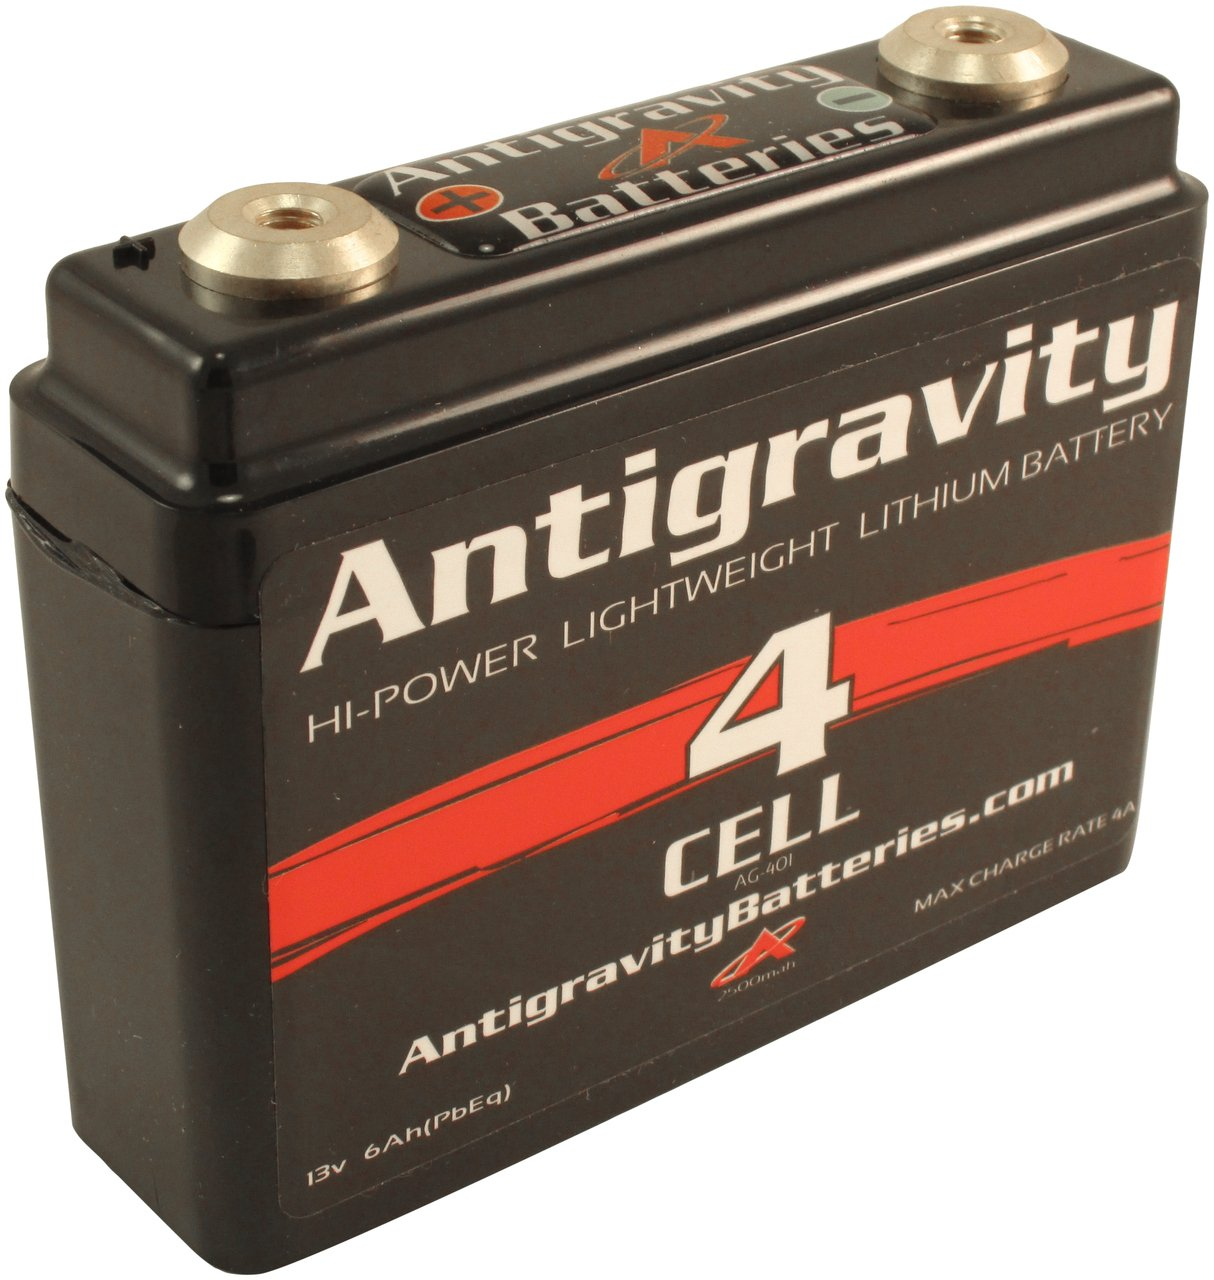 Amazon Com Antigravity Batteries Lightweight Motorcycle Lithium Ion Battery Small Case 4 Cell Ag401 16 Ounces 120 Cca Kicker Chopper Bobber Cafe Racer Harley Automotive